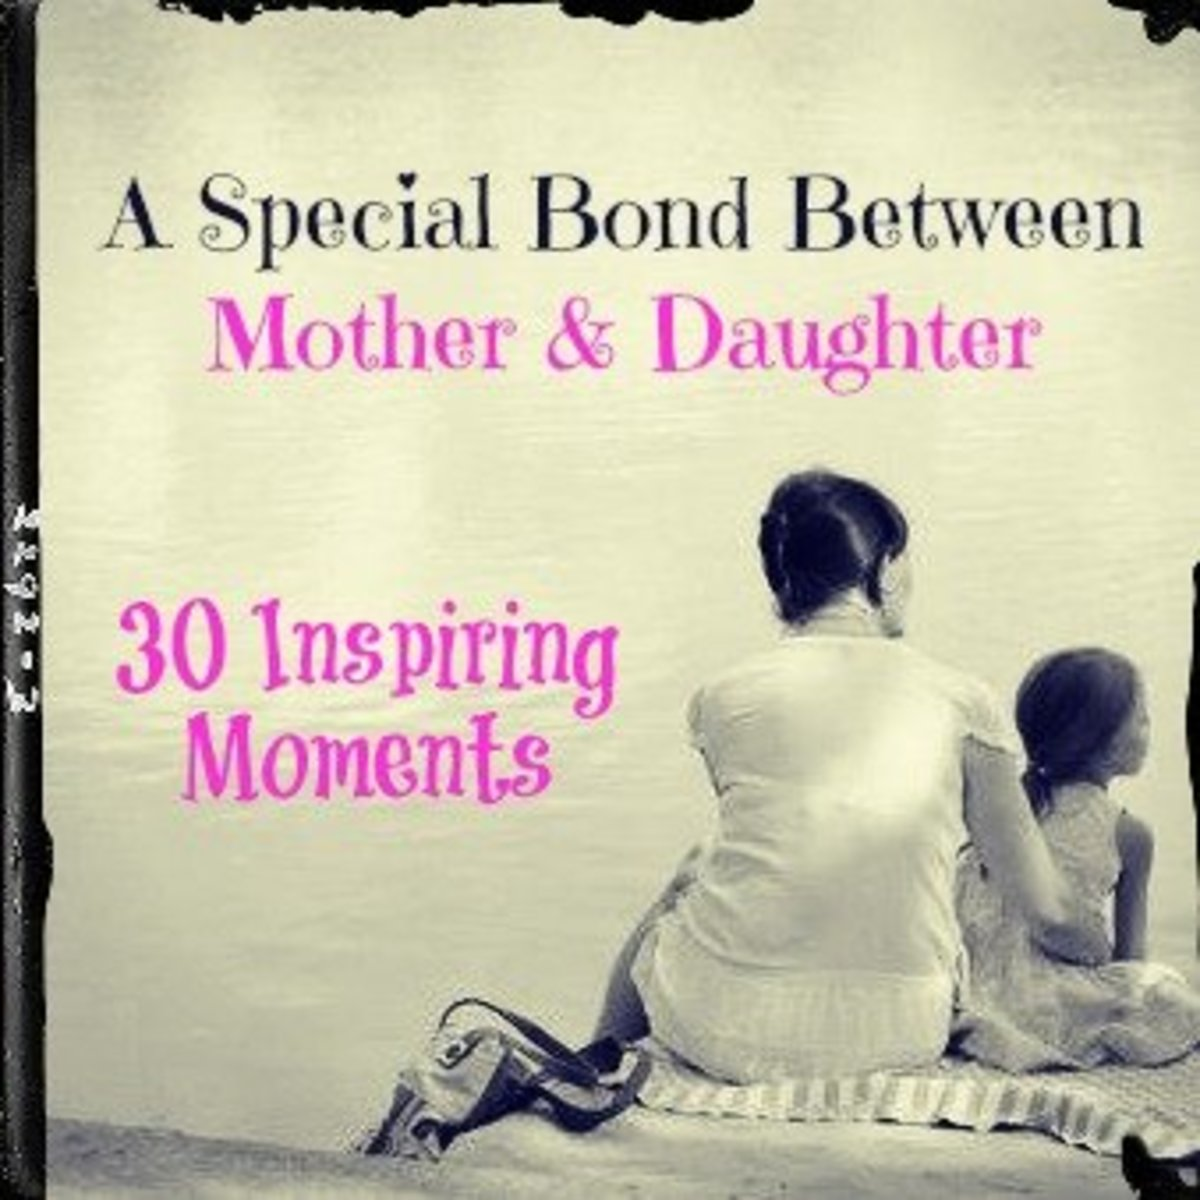 The Special Bond Between Mothers And Daughters  HubPages